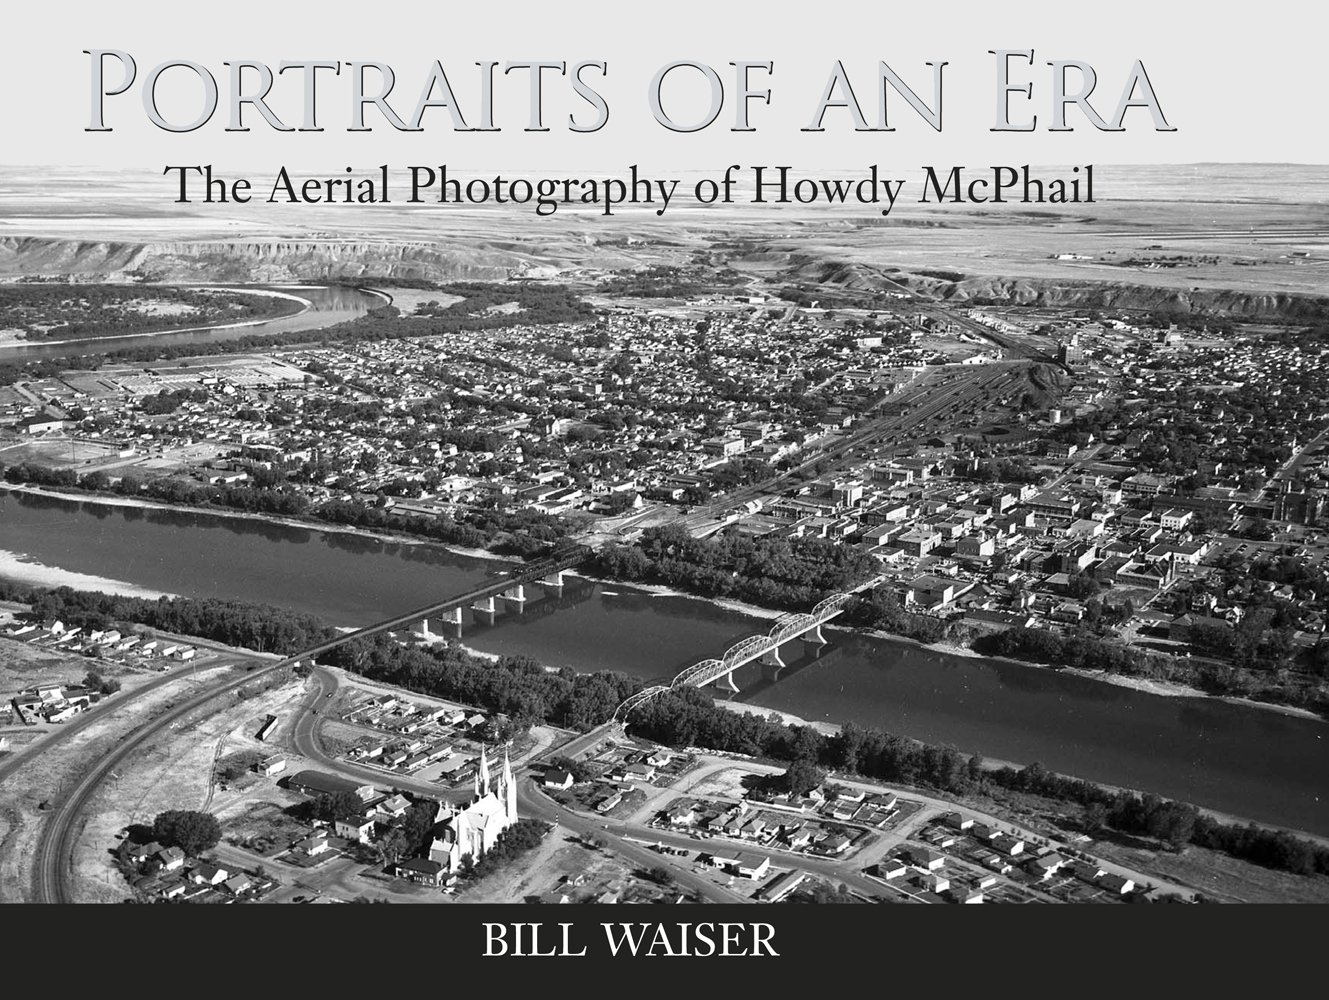 Portraits of an Era: The Aerial Photography of Howdy McPhail